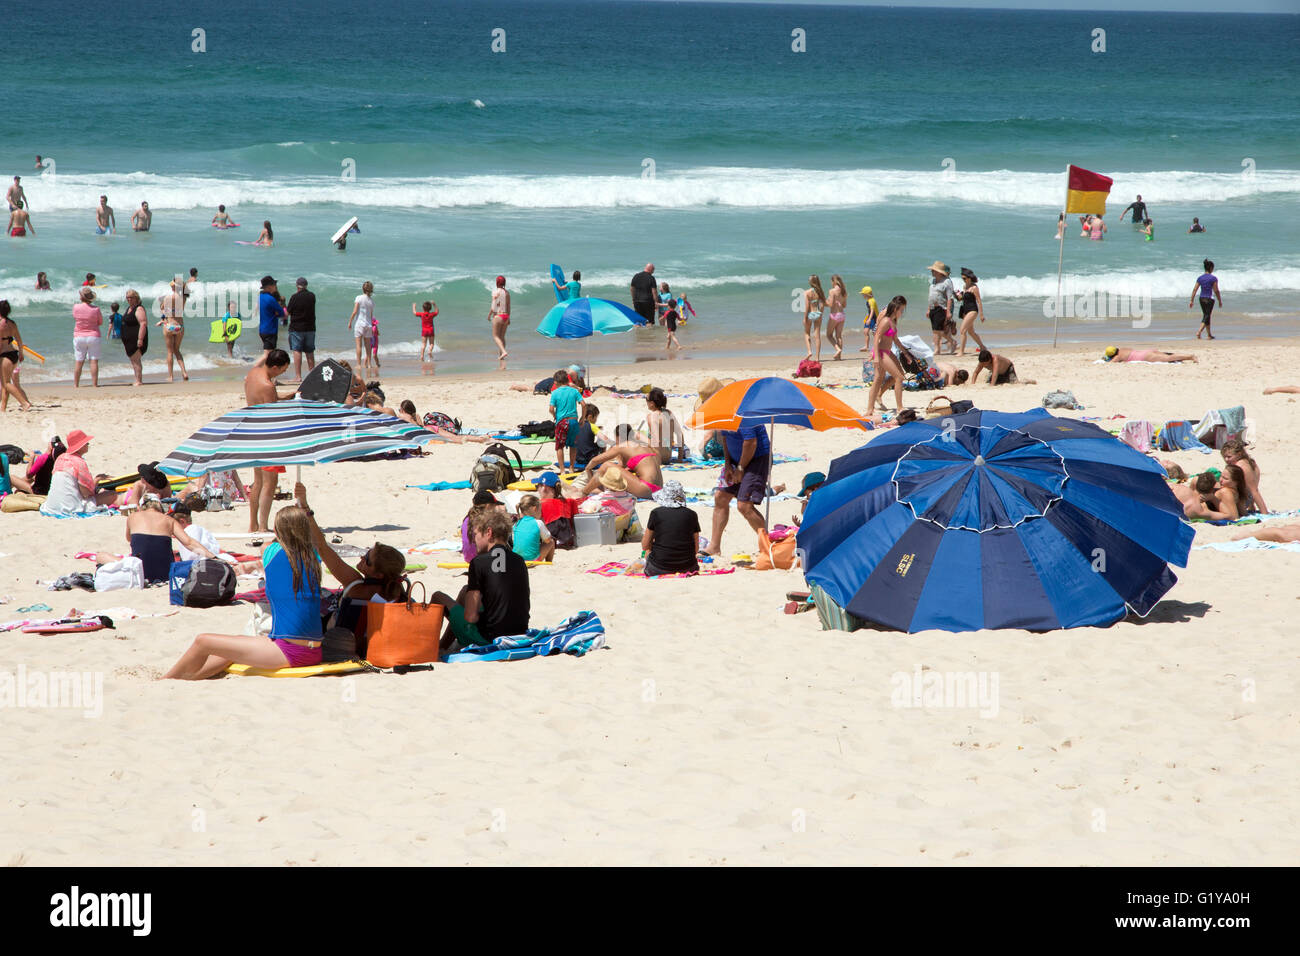 People enjoying the beach and warm weather on the Gold Coast in Queensland Australia - Stock Image